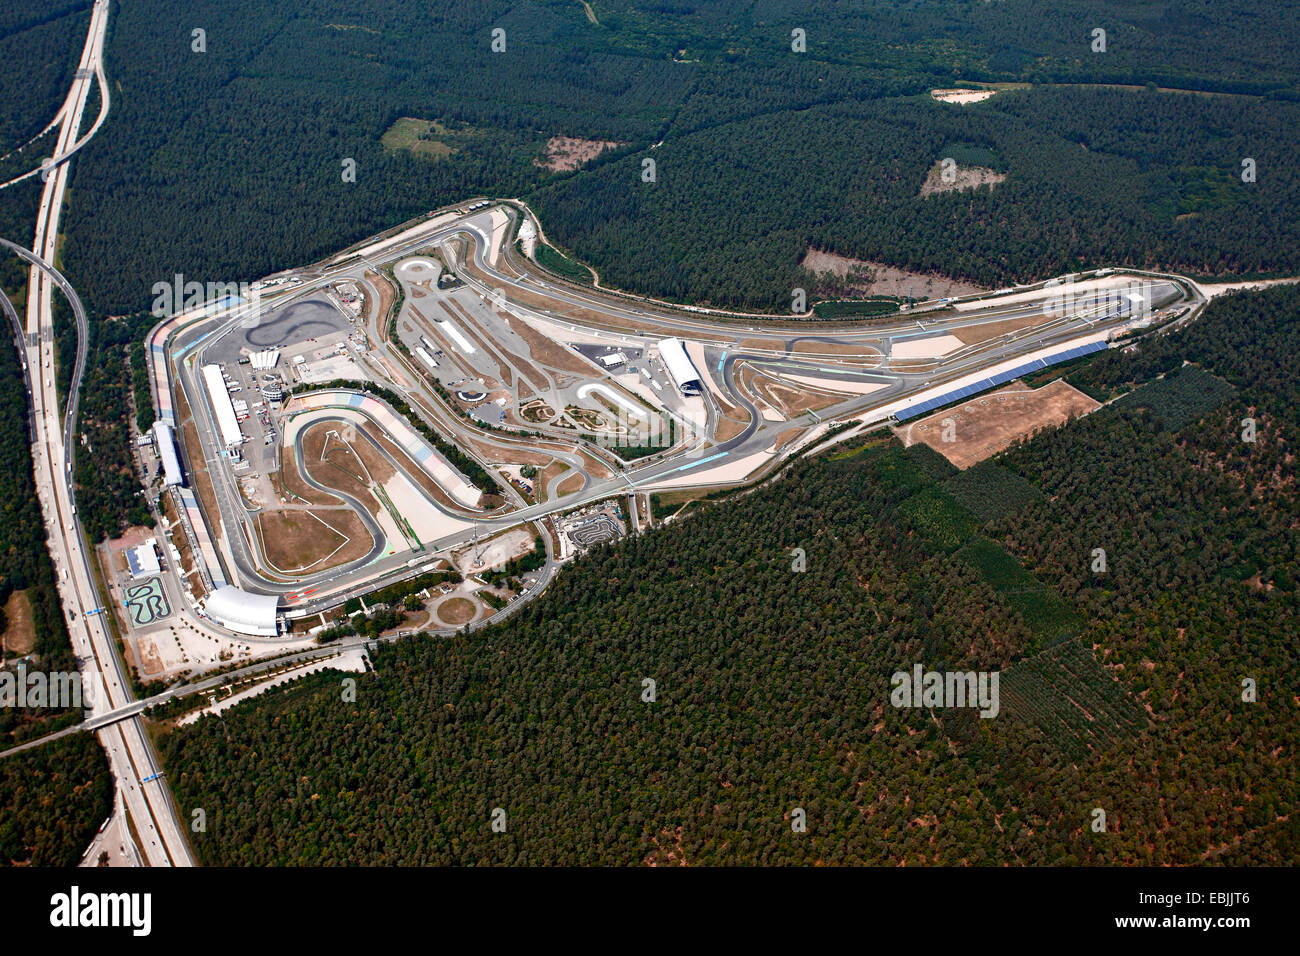 aerial view of the motorsport race circuit Hockenheimring, Germany, Baden-Wuerttemberg, Hockenheim - Stock Image